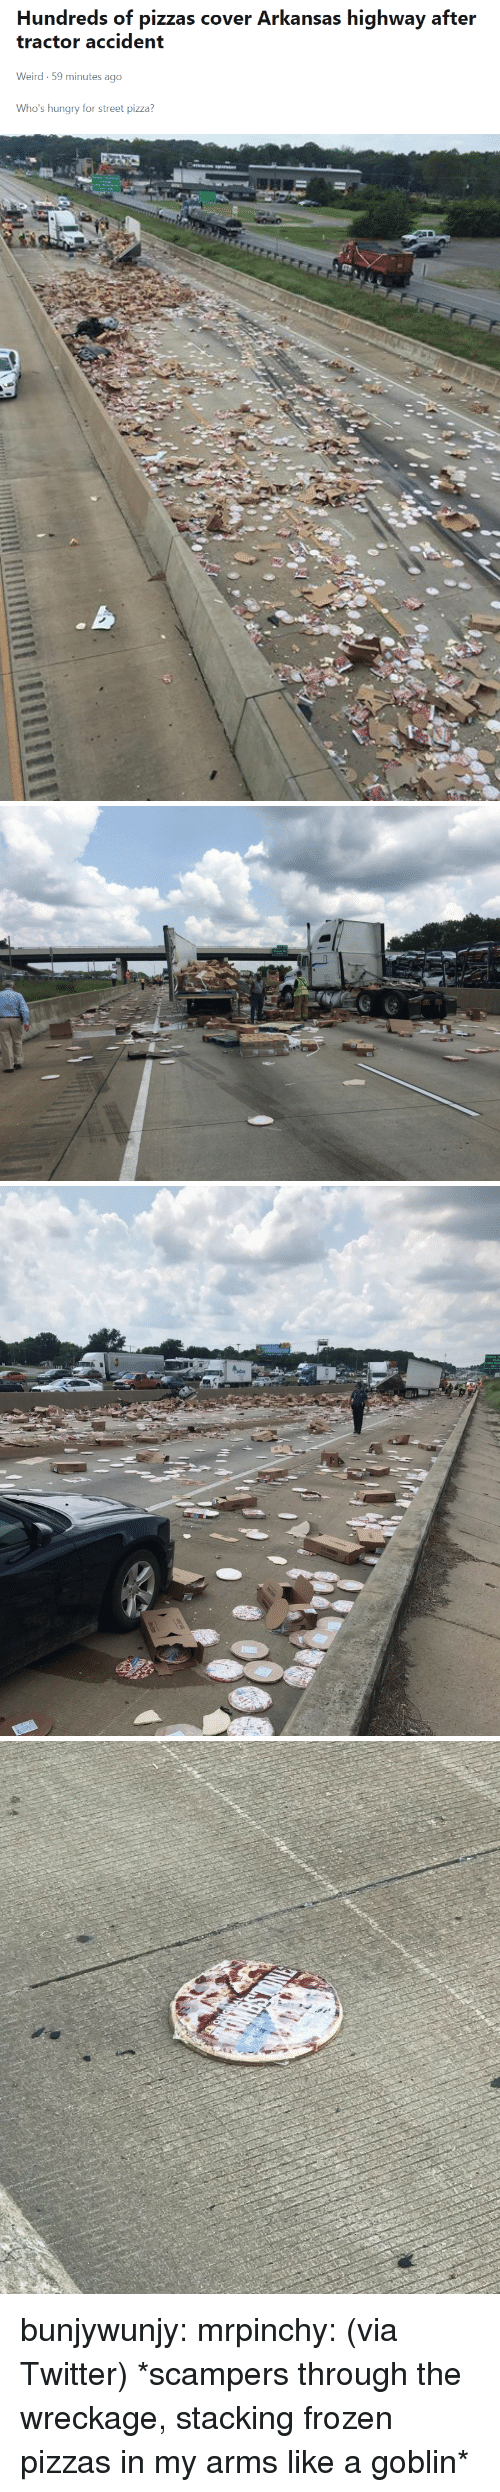 wreckage: Hundreds of pizzas cover Arkansas highway after  tractor accident  Weird-59 minutes ago  Who's hungry for street pizza? bunjywunjy: mrpinchy: (via Twitter)  *scampers through the wreckage, stacking frozen pizzas in my arms like a goblin*